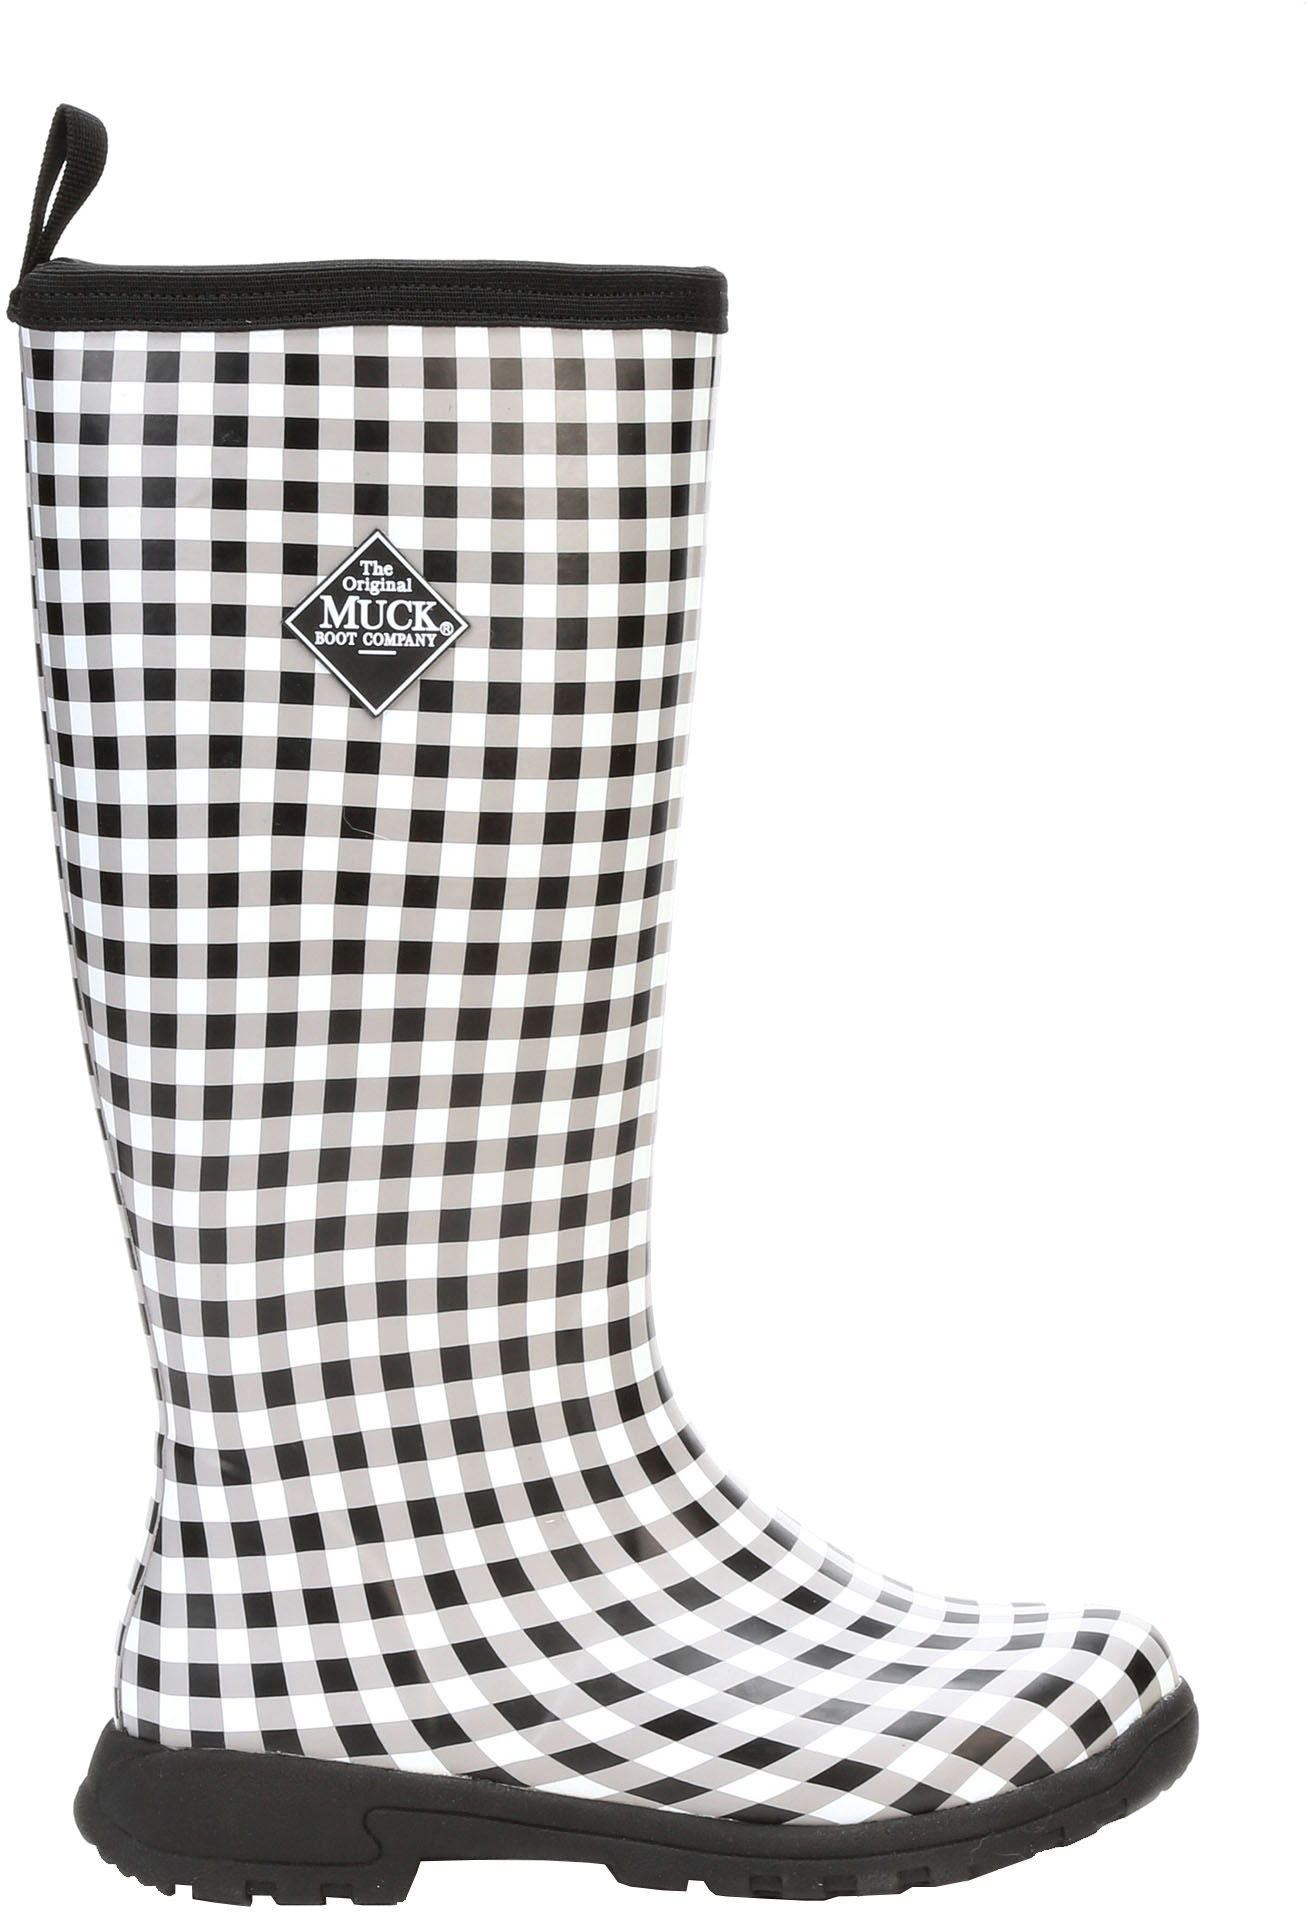 Breezy Tall, Womens Rain Boots The Original Muck Boot Company